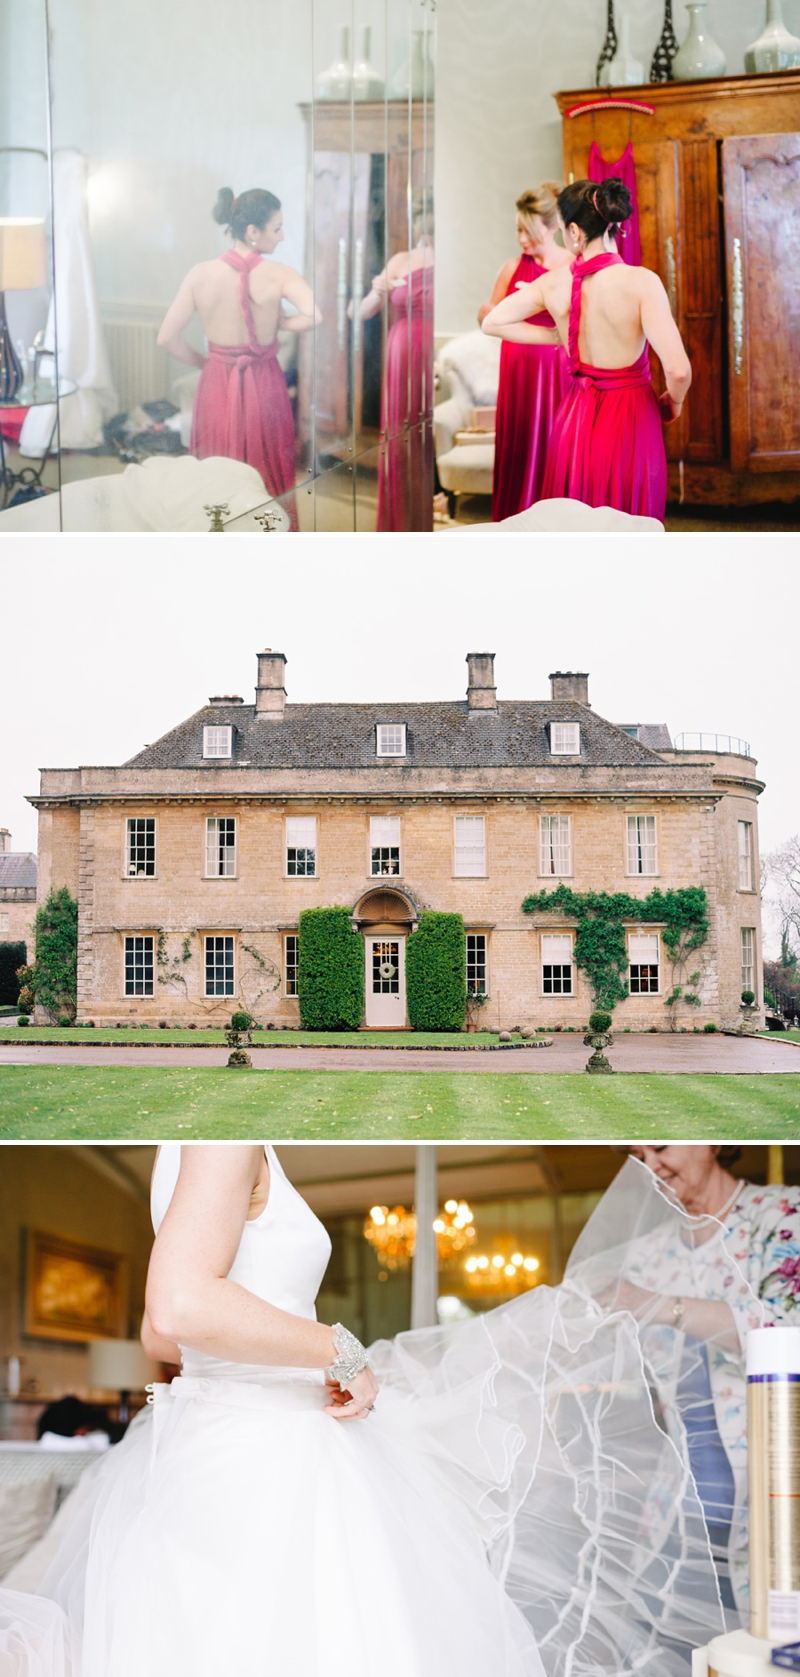 A sophisticated wedding at Babington house with Kate Spade pink shoes by Ann Kathrin Koch 0521 Contemporary Country.